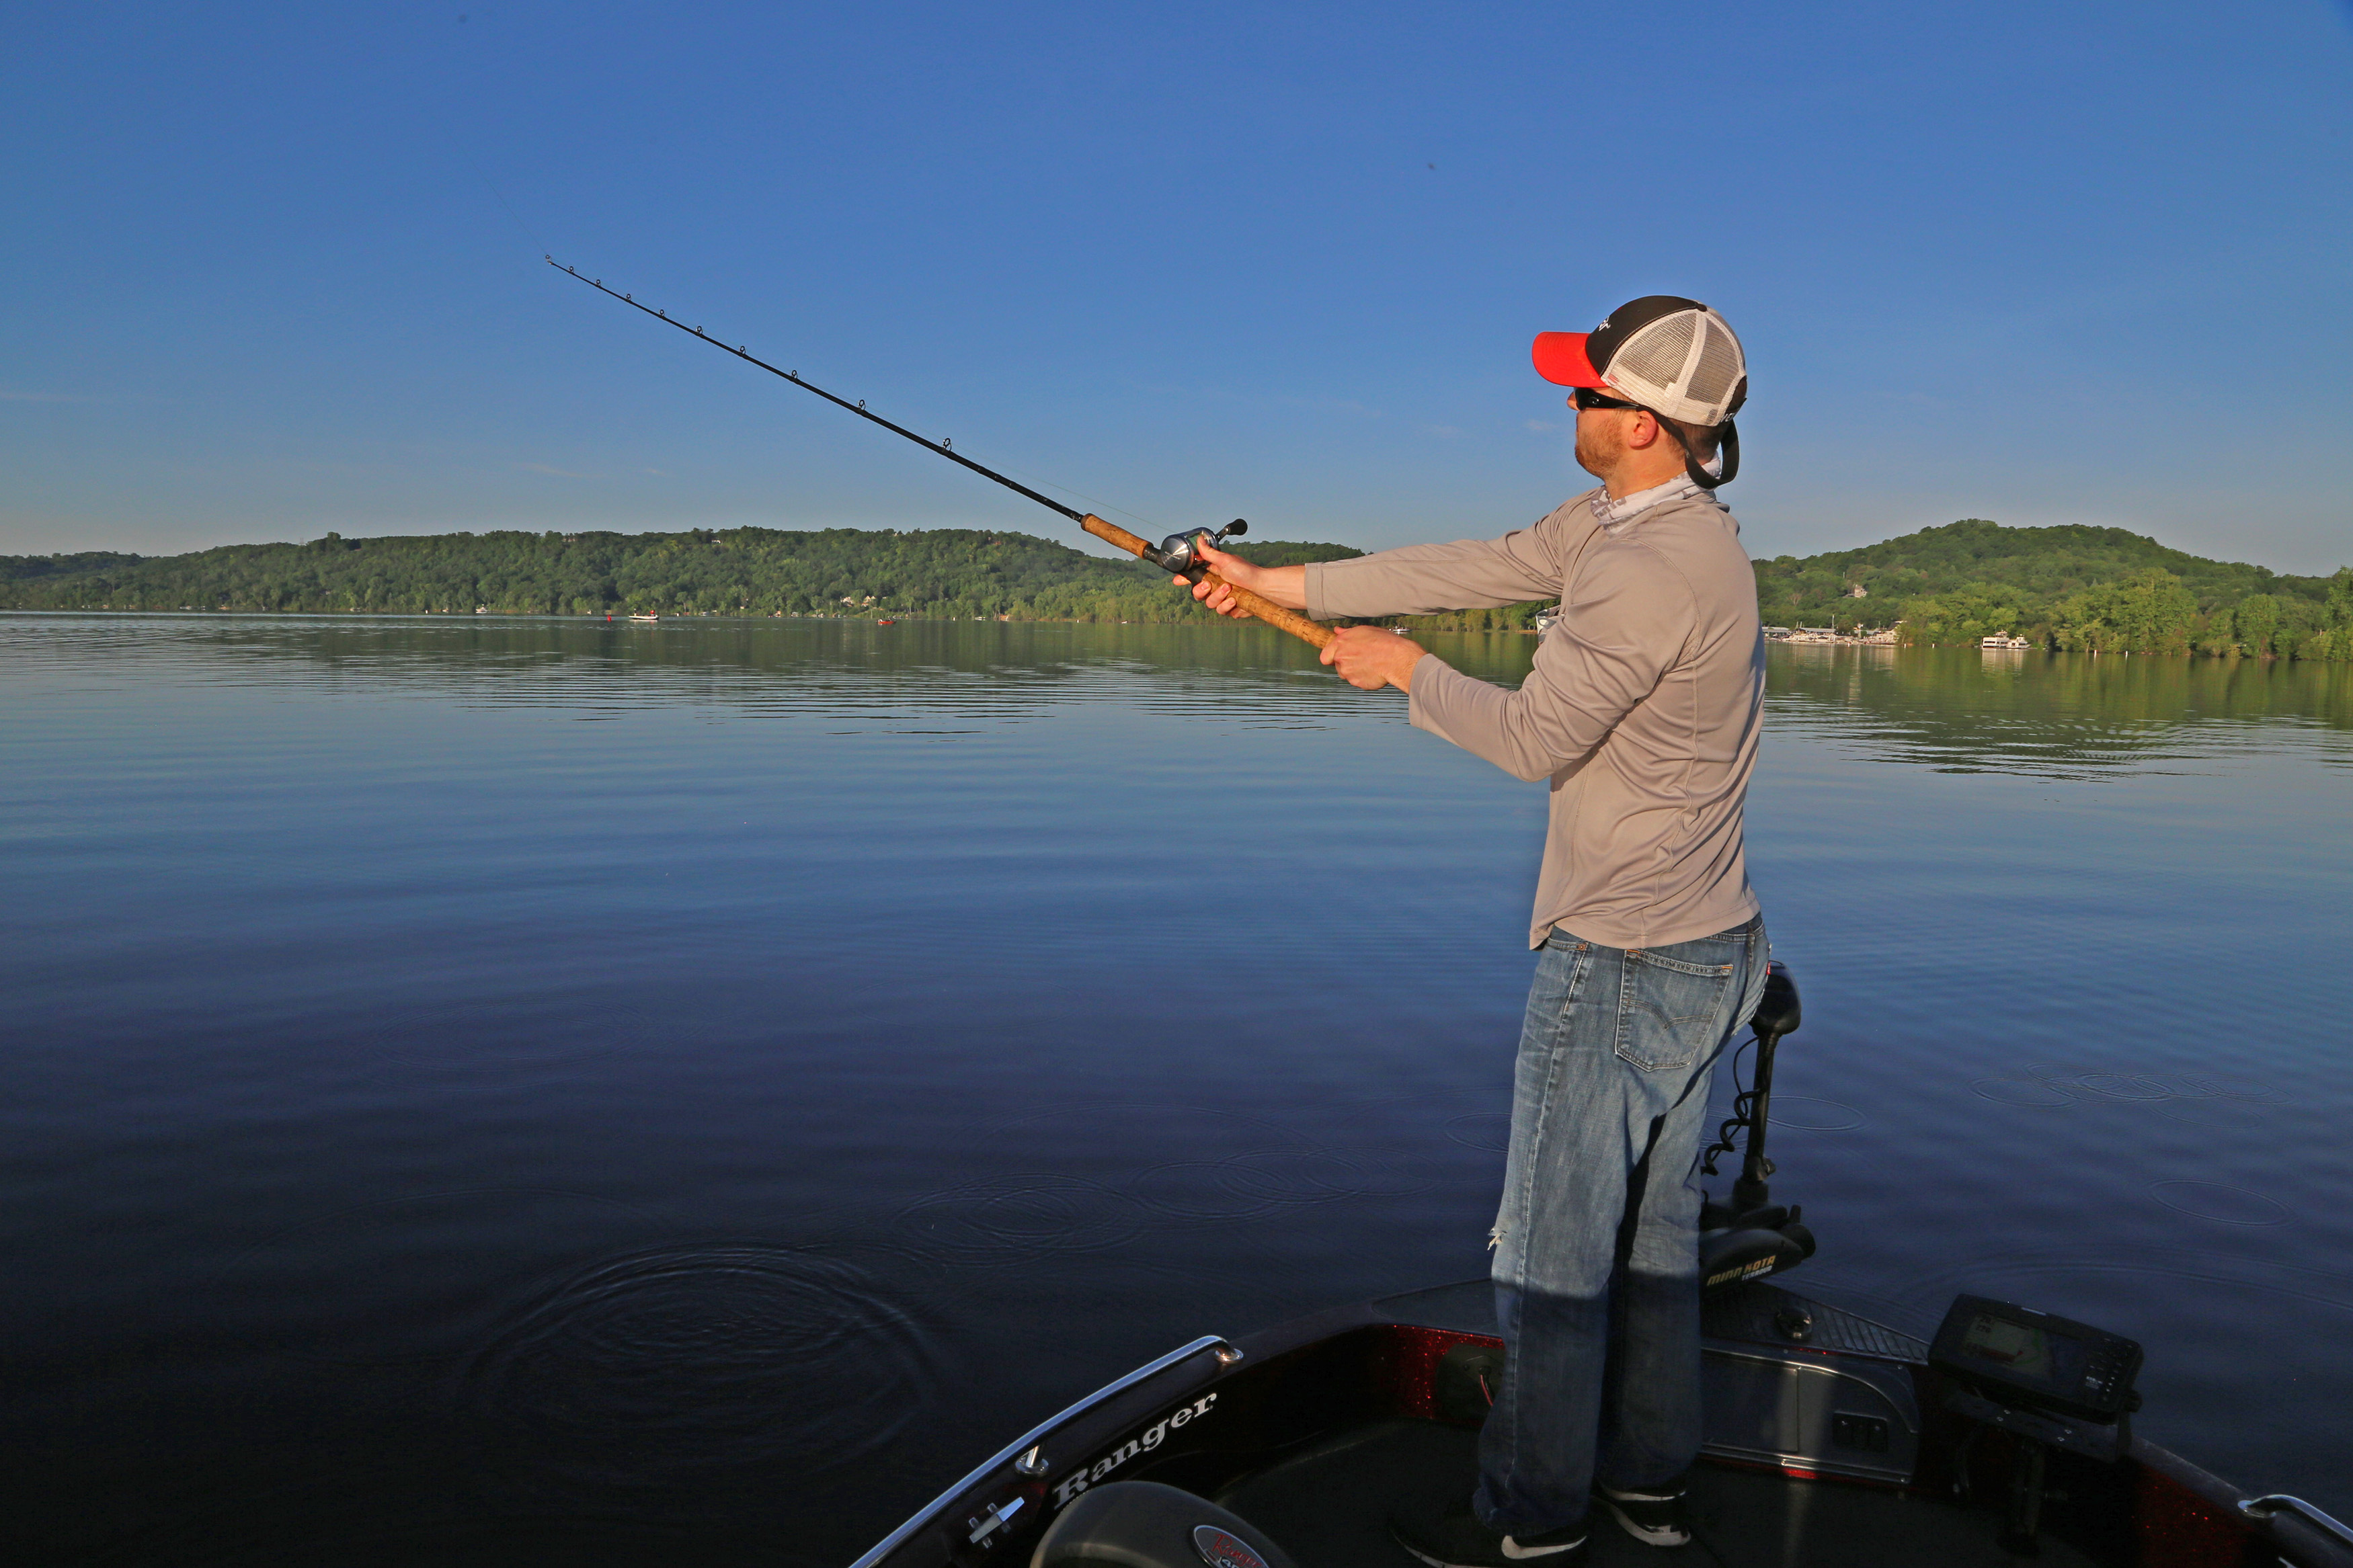 Minnesota fishing license sales hold steady, but anglers are aging ...